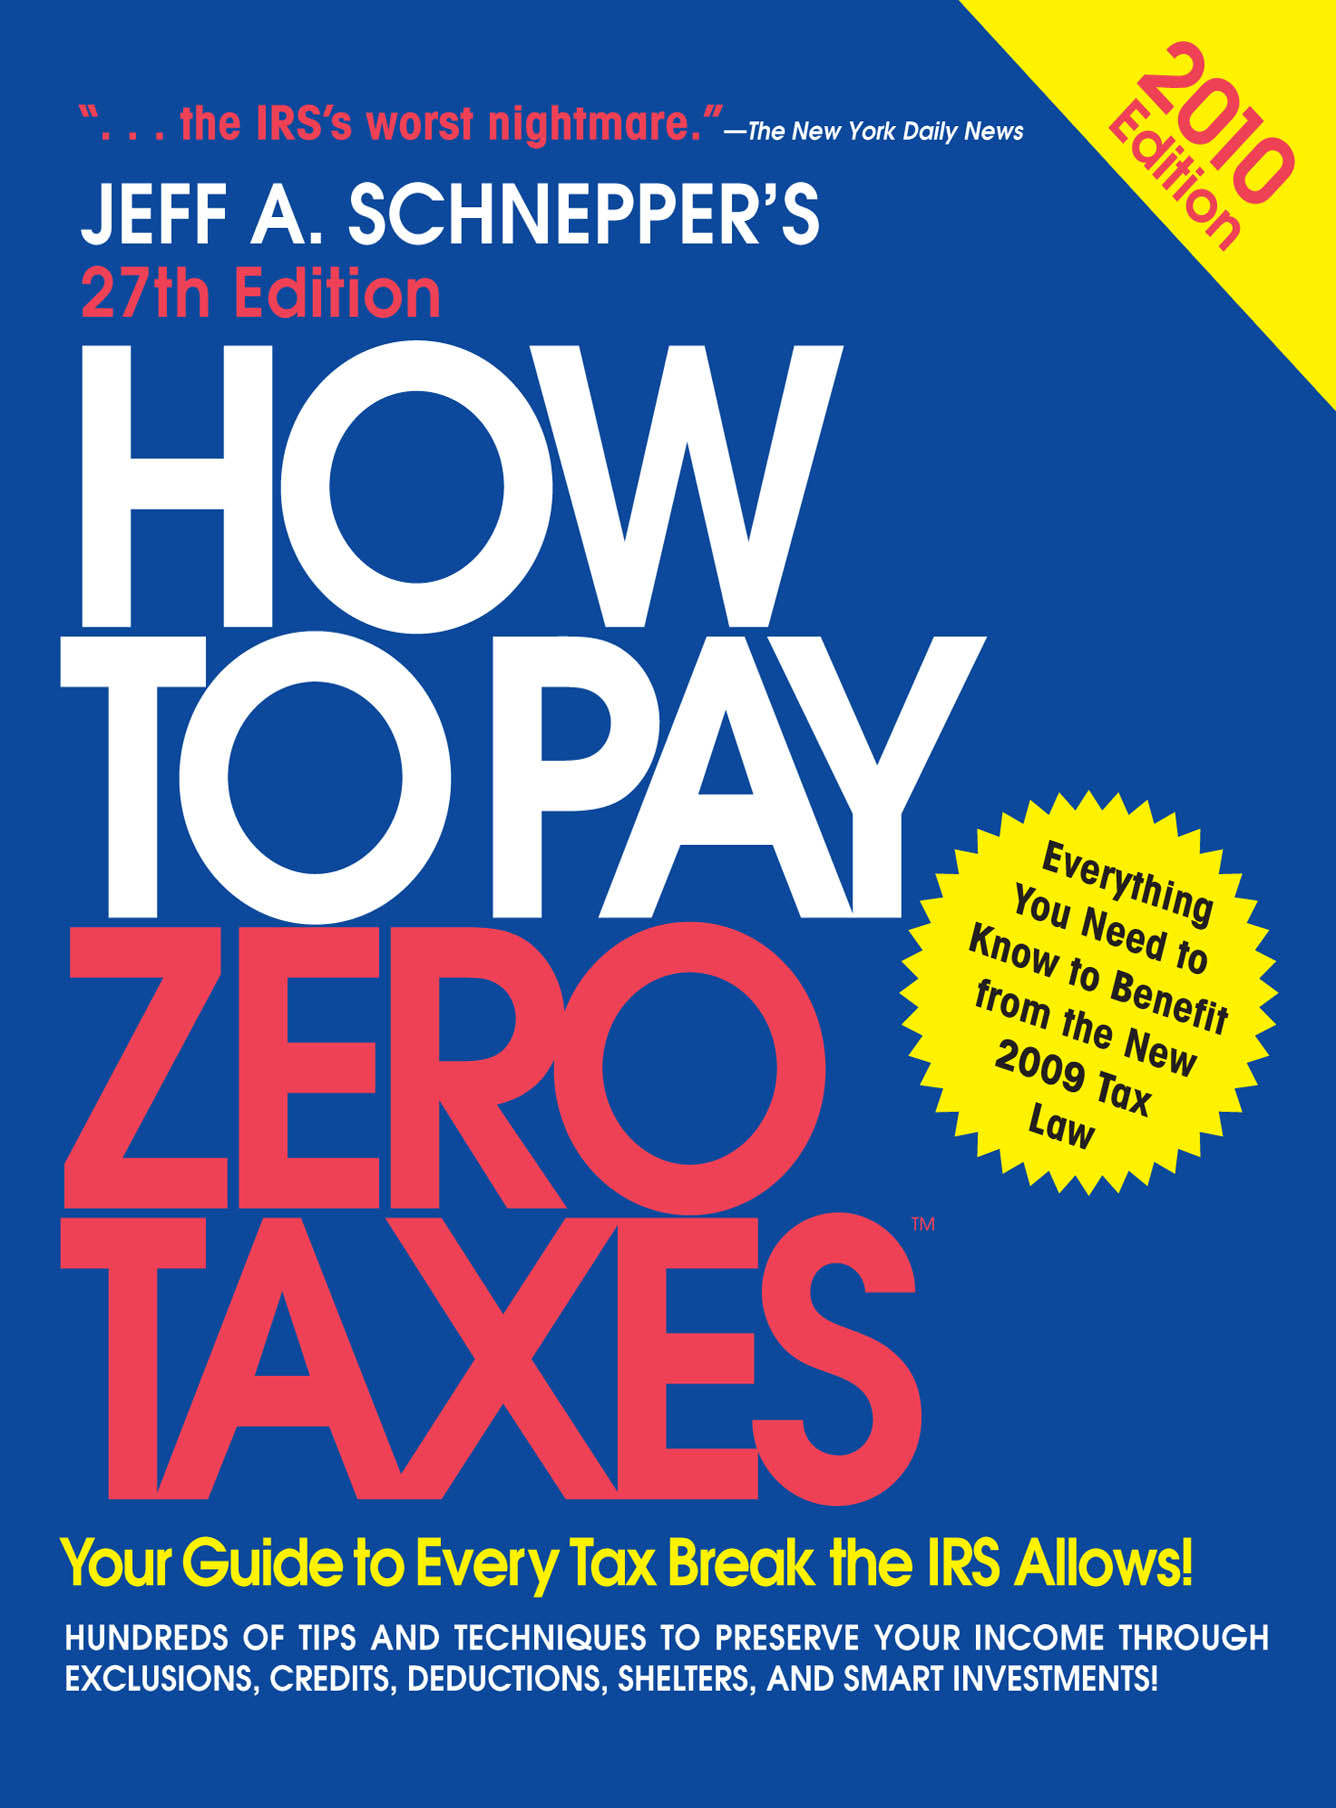 Download Ebook How to Pay Zero Taxes 2010 (27th ed.) by Jeff A. Schnepper Pdf